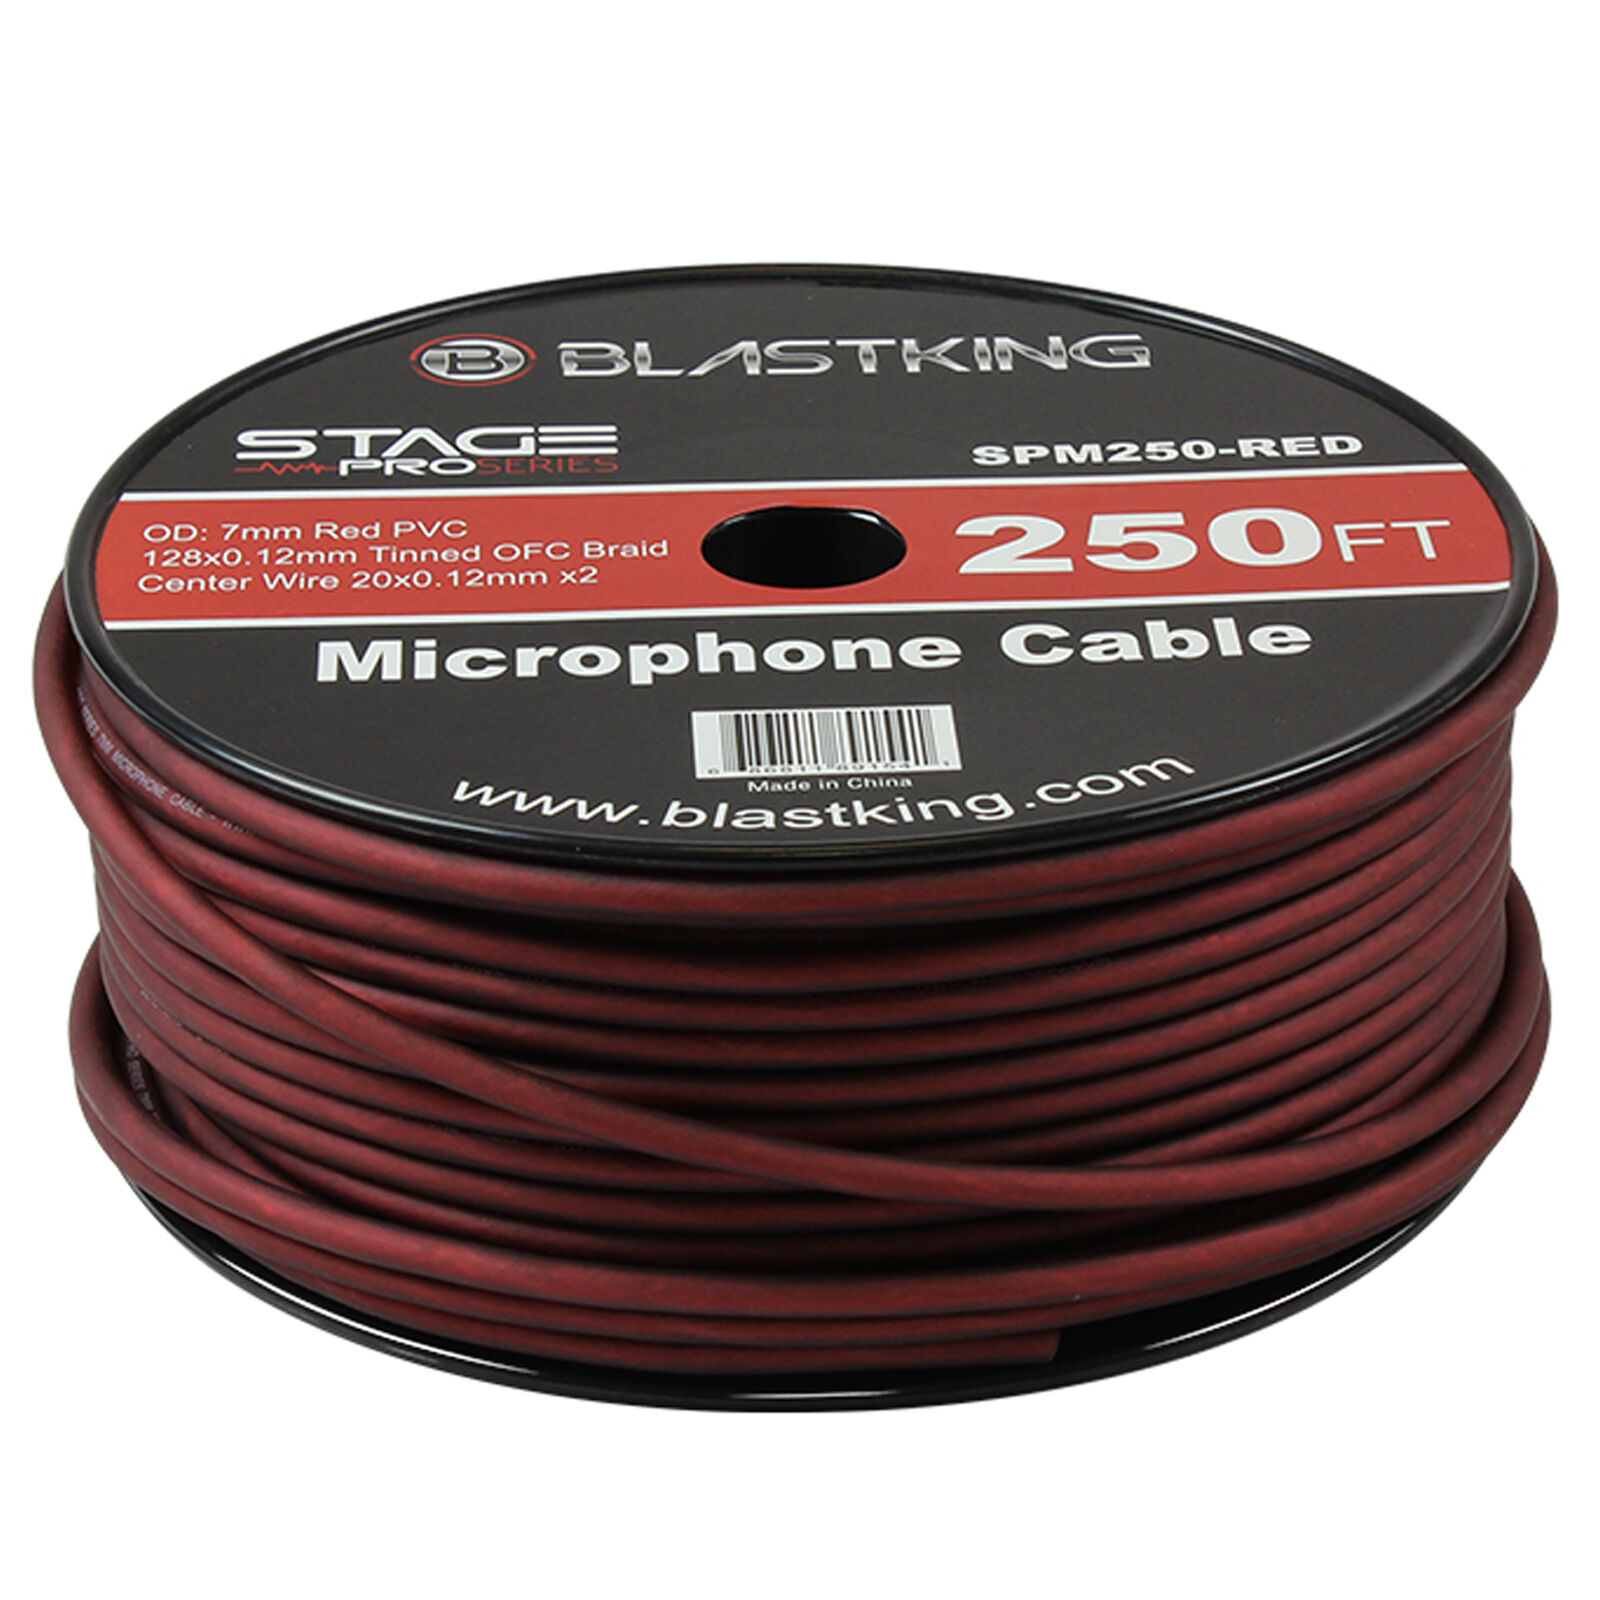 Blastking 2 Conductor OFC Microphone Mic Cable 250' Ft rot Bulk -SPM250-rot